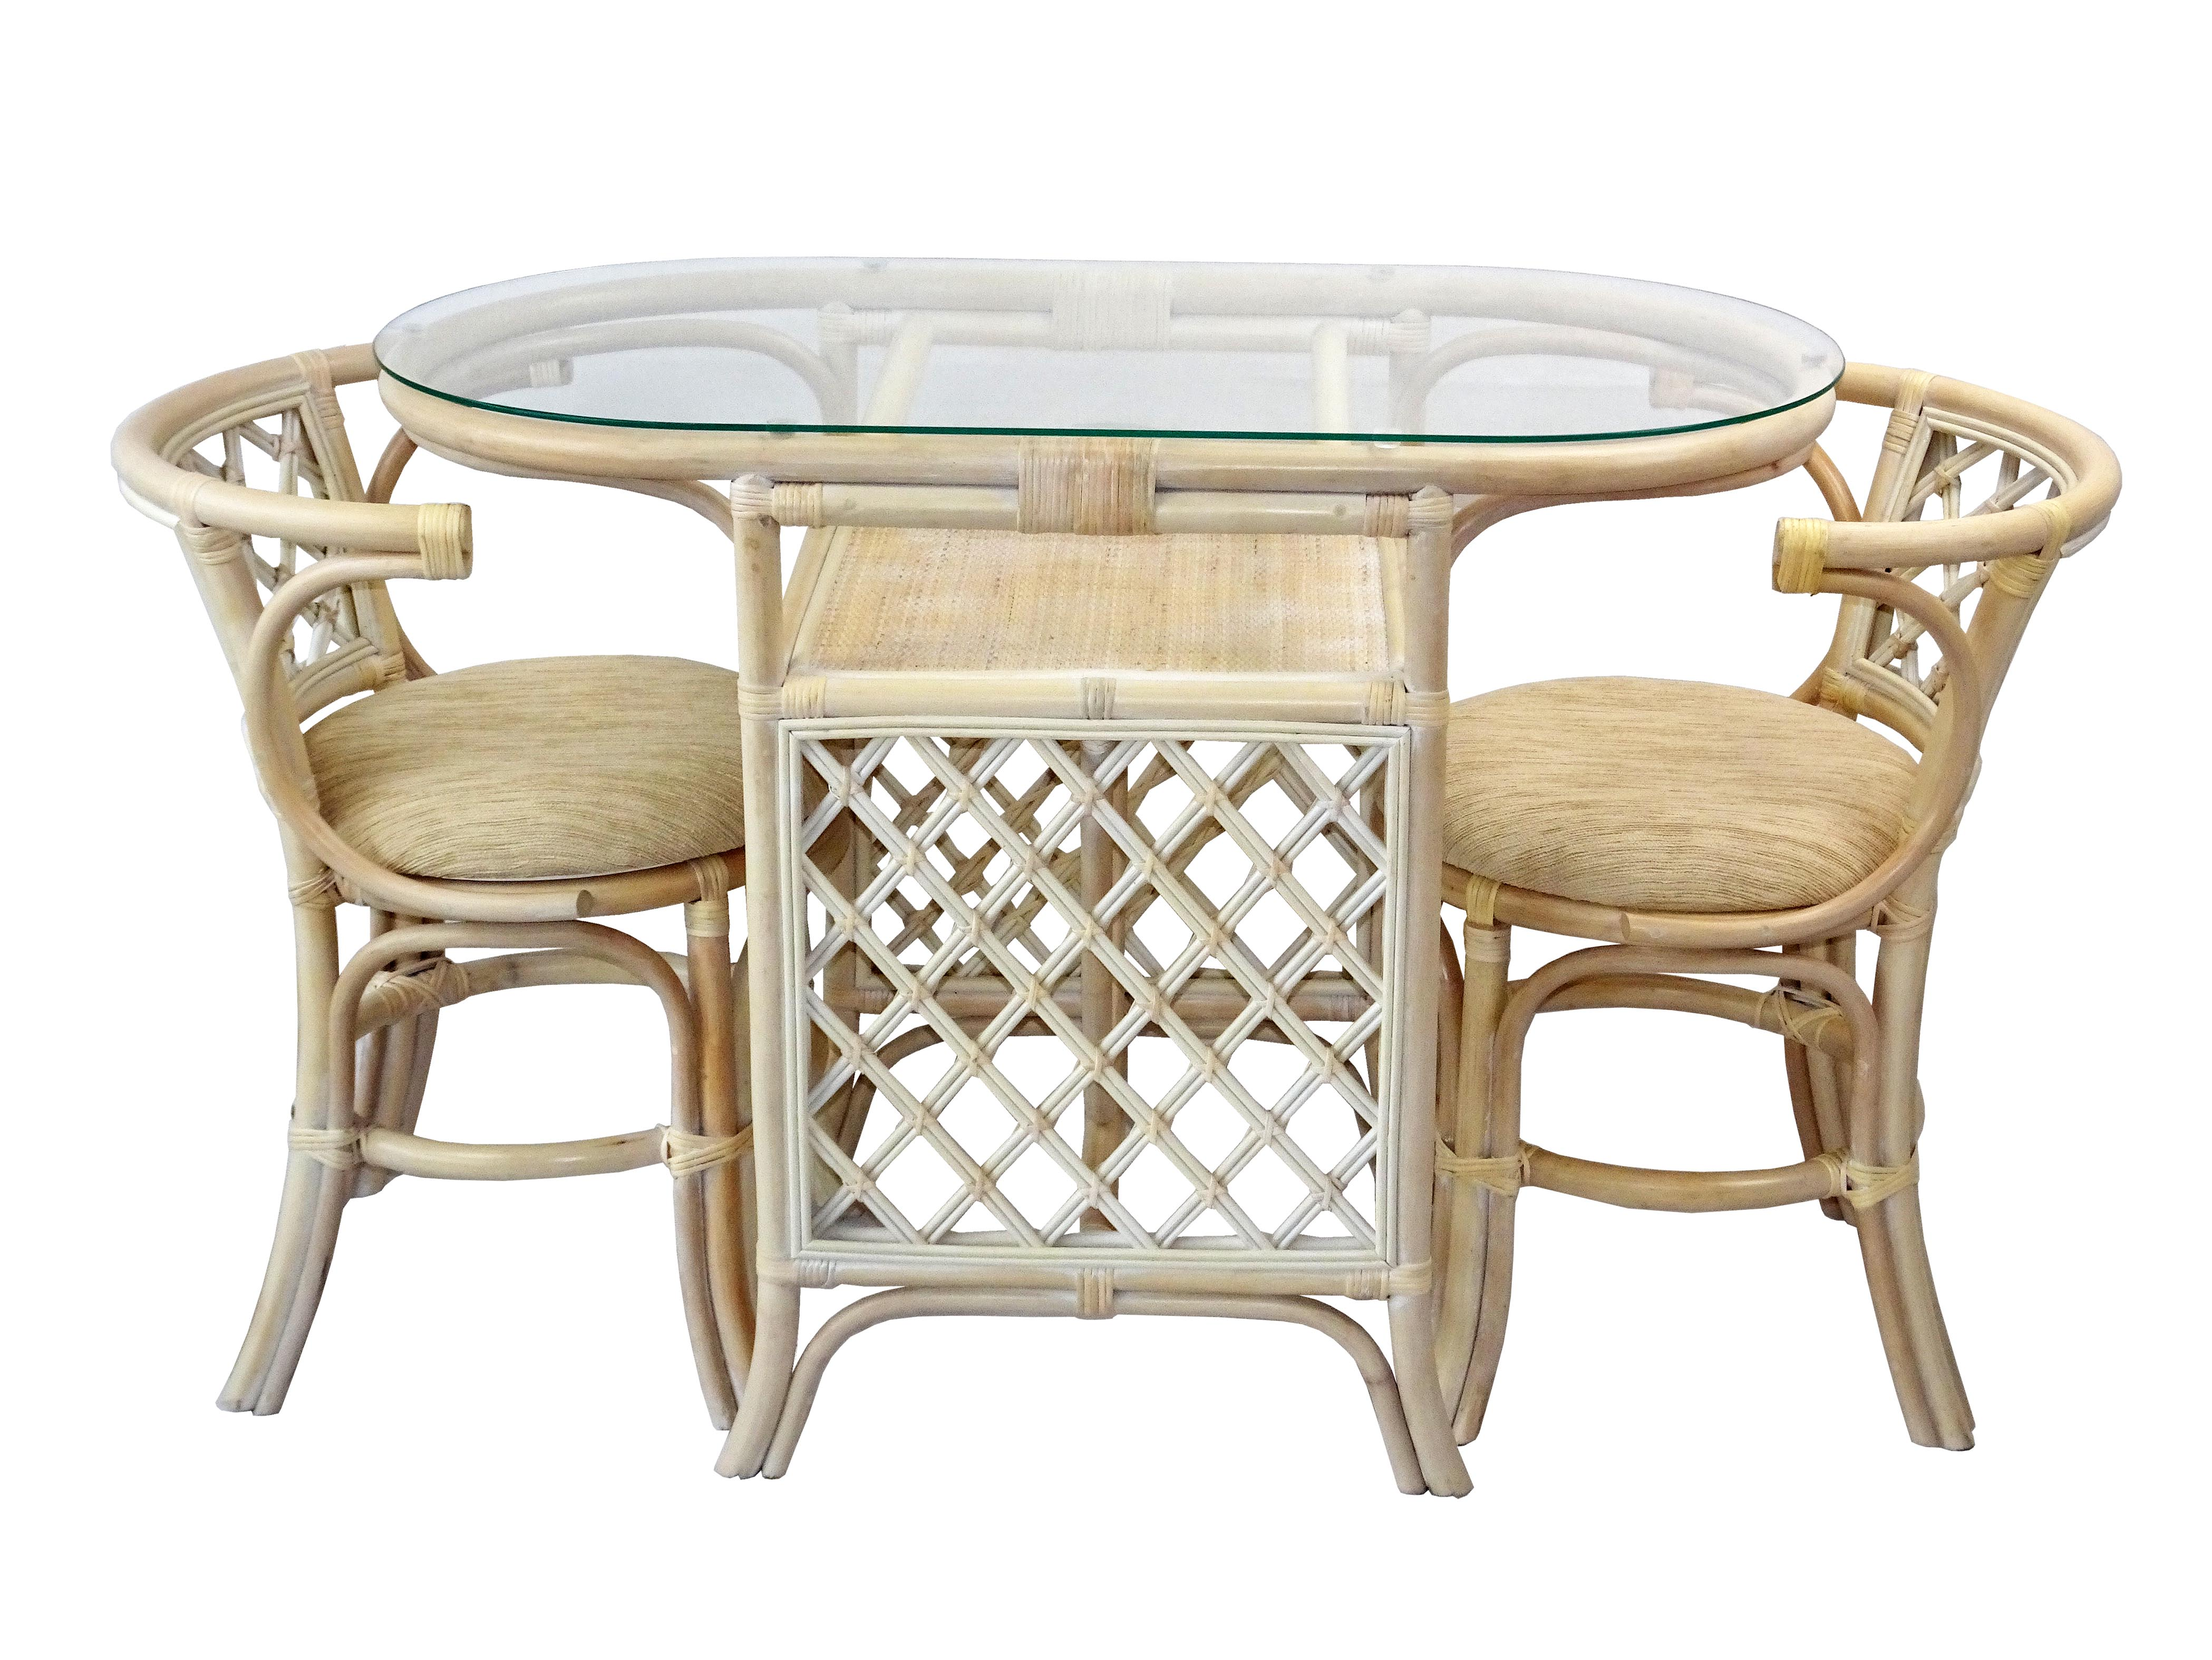 Sk New Interiors Dining Furniture Borneo Set Of 2 Natural Rattan Chairs W Cream Cushion And Oval Table W Glass White Wash Walmart Com Walmart Com